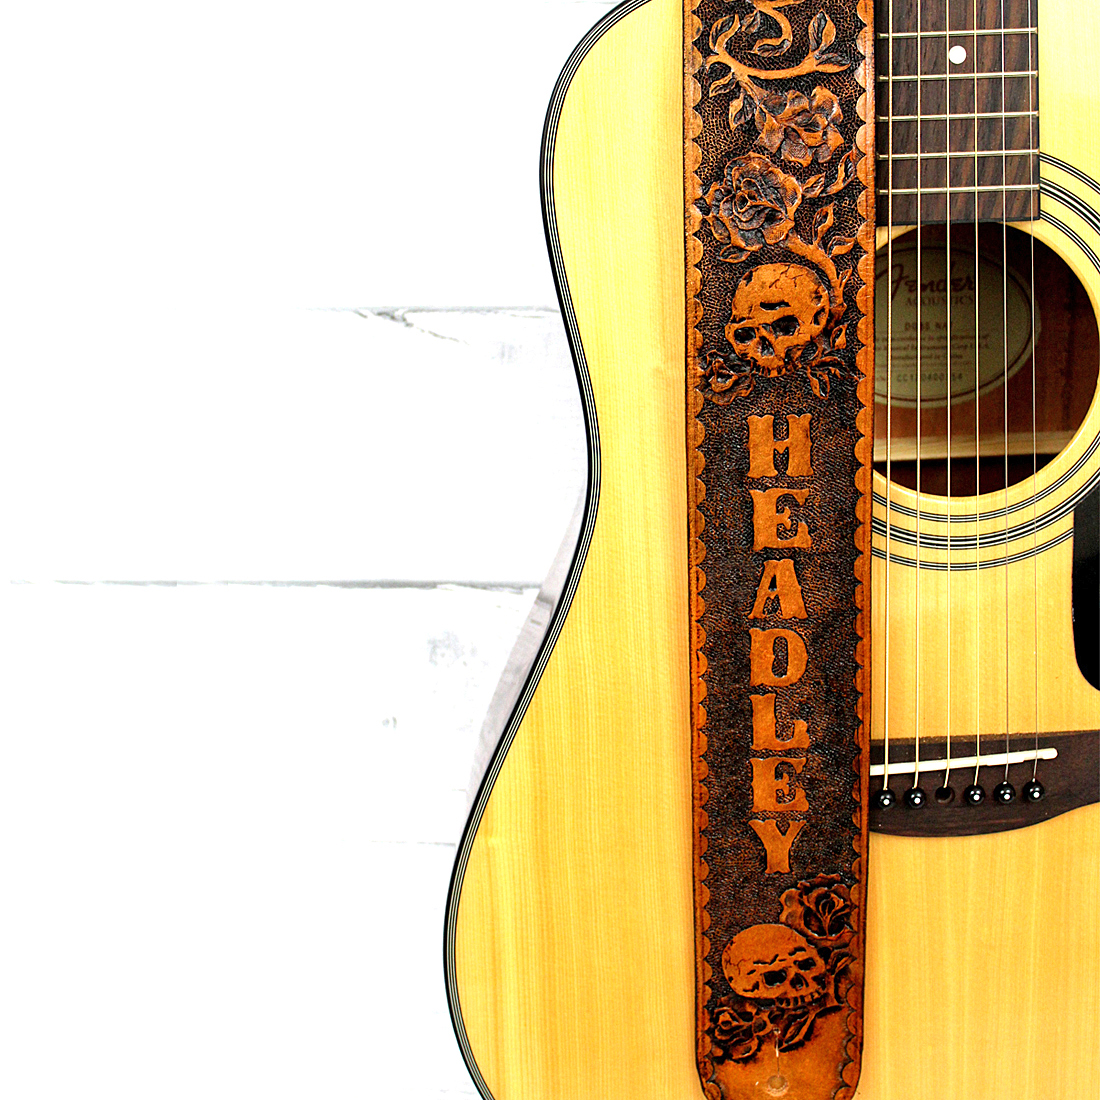 hand-tooled-skull-and-roses-personalized-leather-guitar-strap-the-leather-smithy_Front1